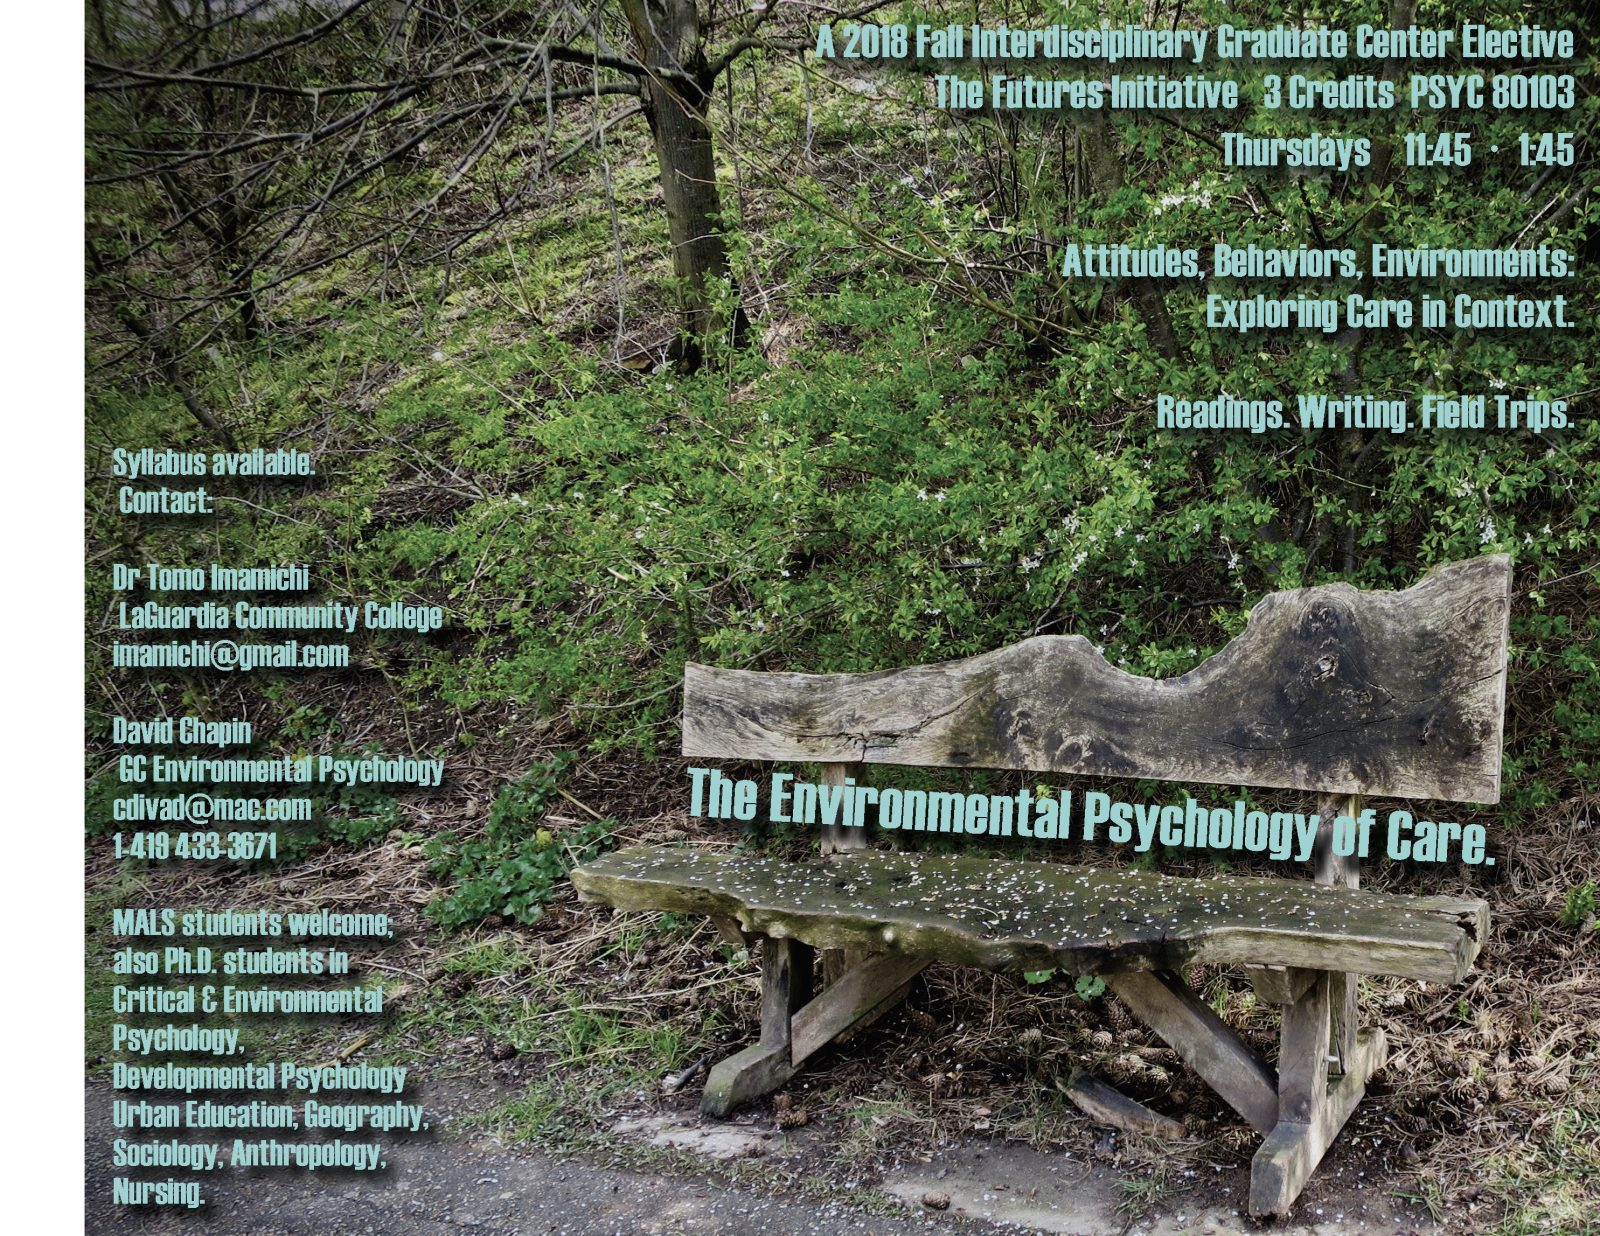 Flyer promoting Environmental Psychology of Care - outdoor scene with text